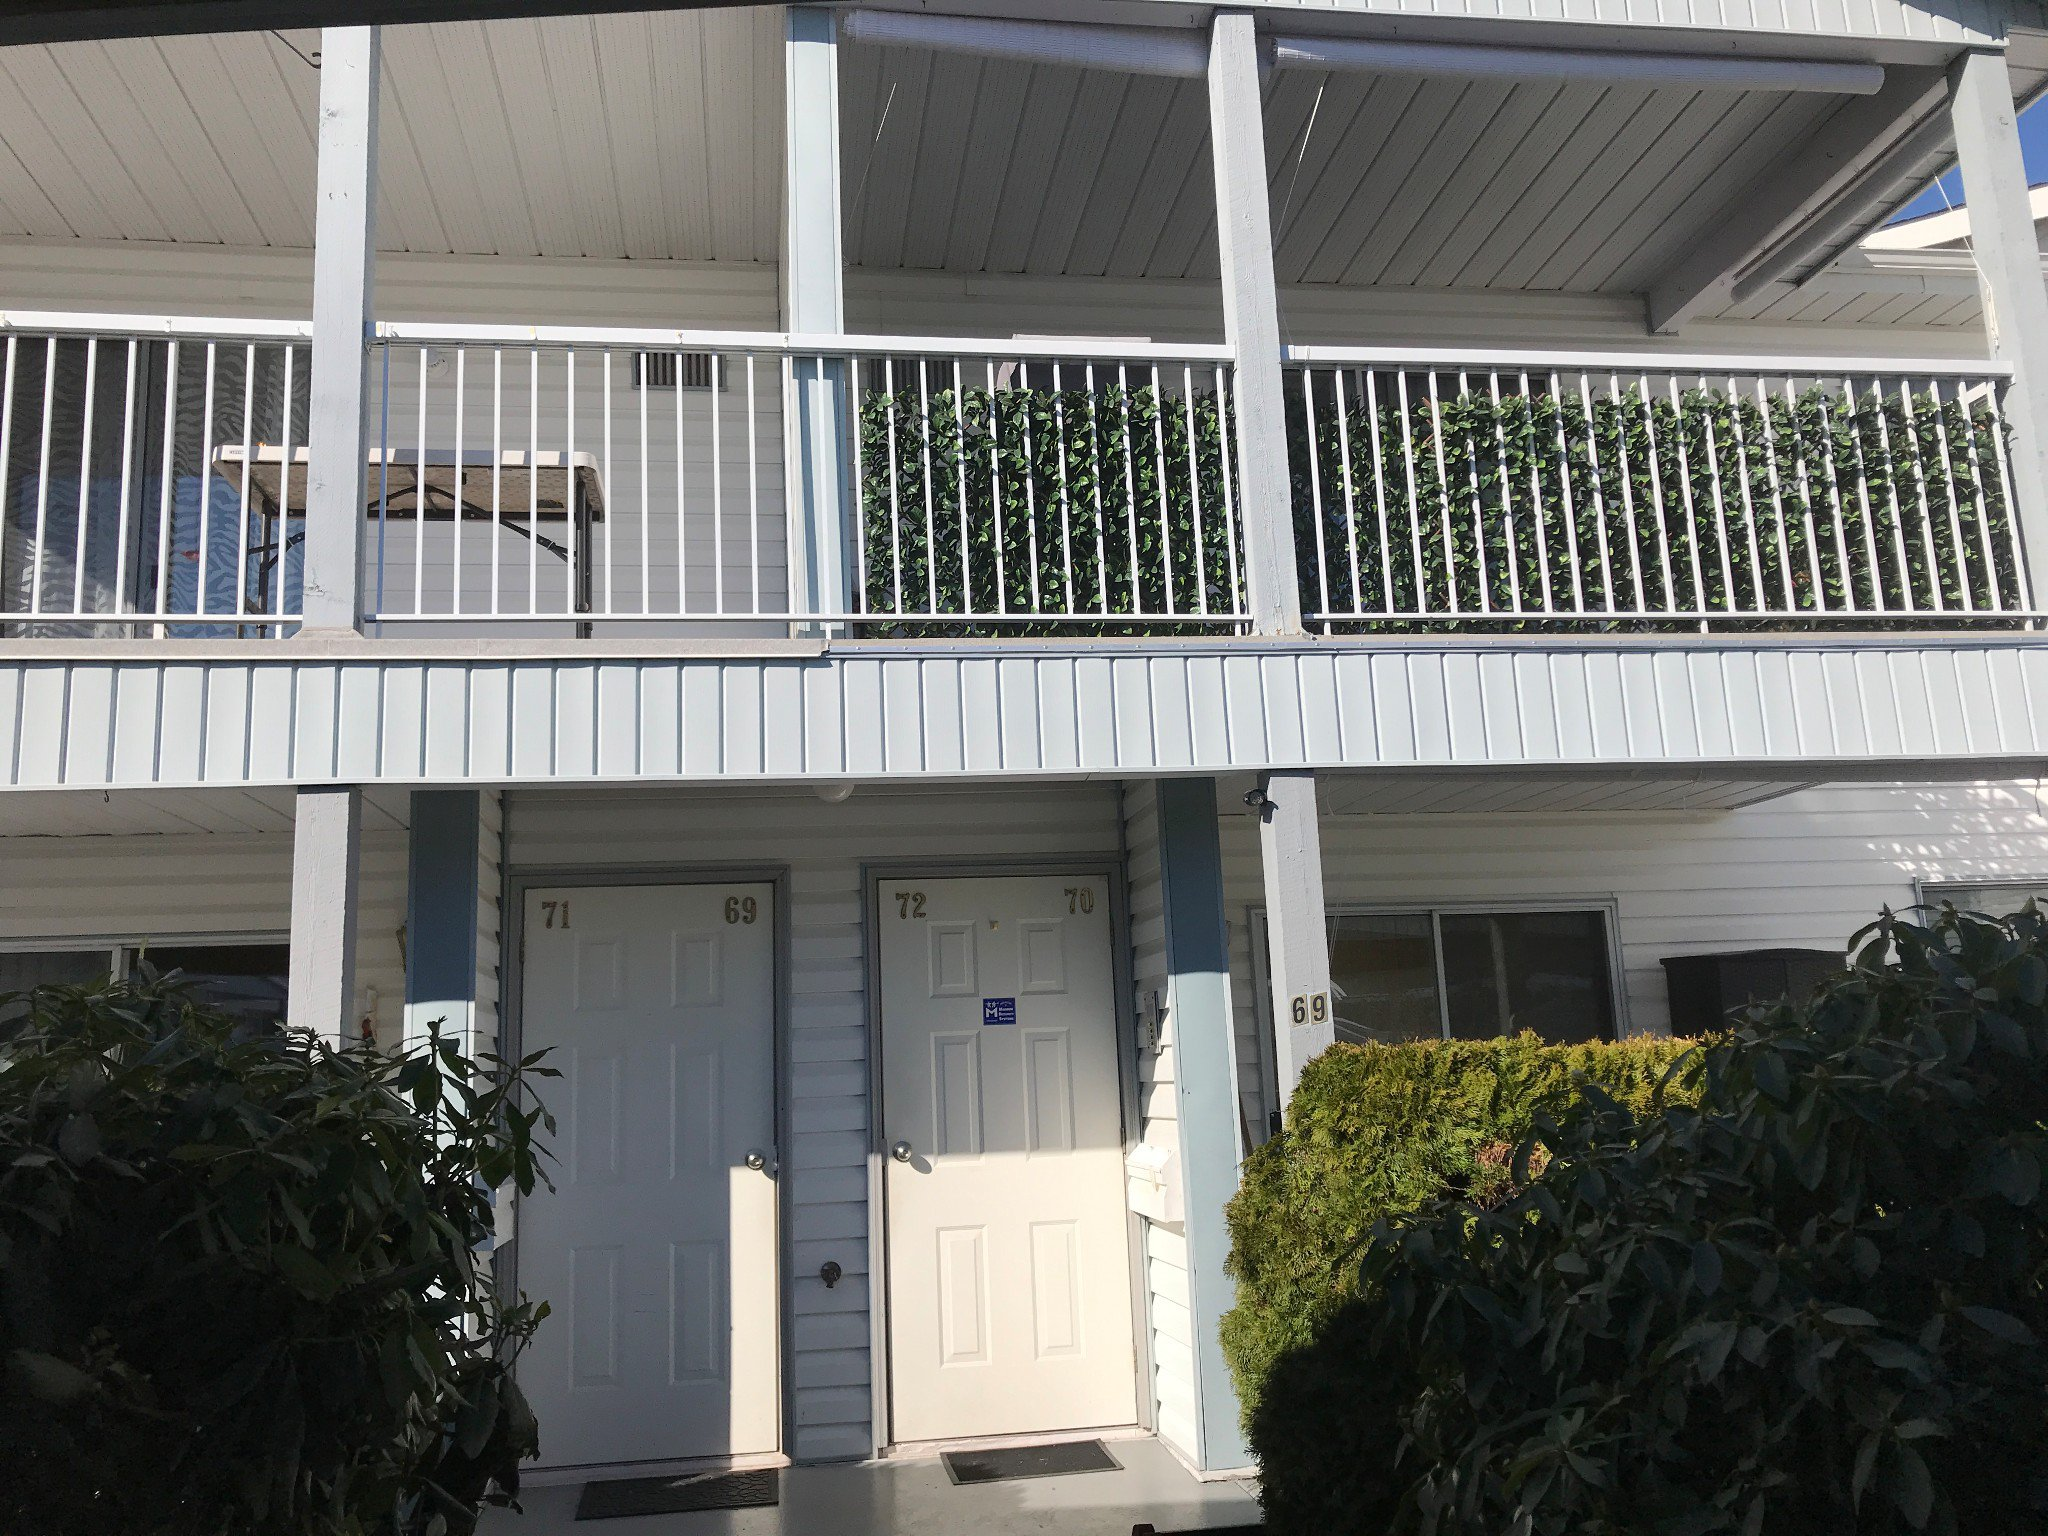 Main Photo: #72 32691 Garibaldi Dr. in Abbotsford: Central Abbotsford Condo for rent